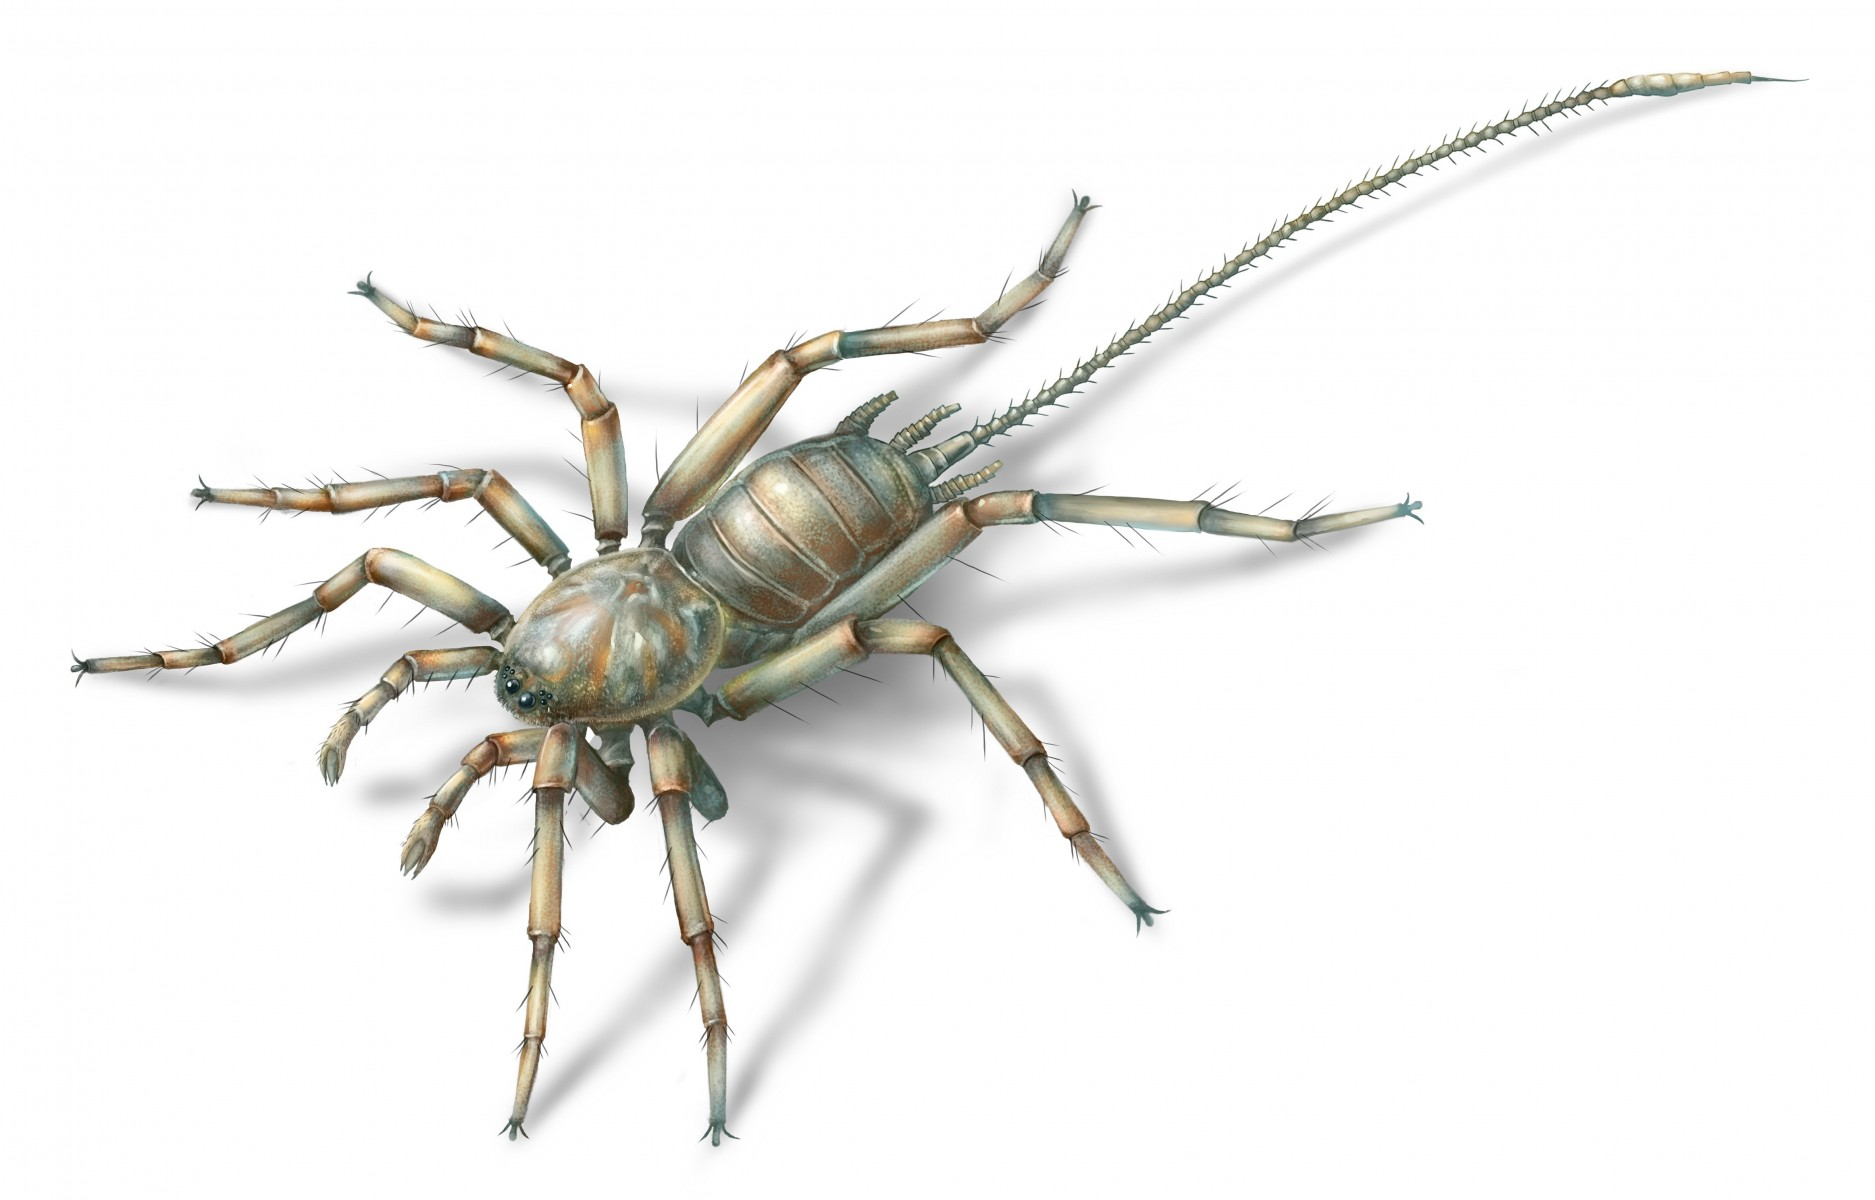 Spider fossil with a whip-like tail found in Myanmar